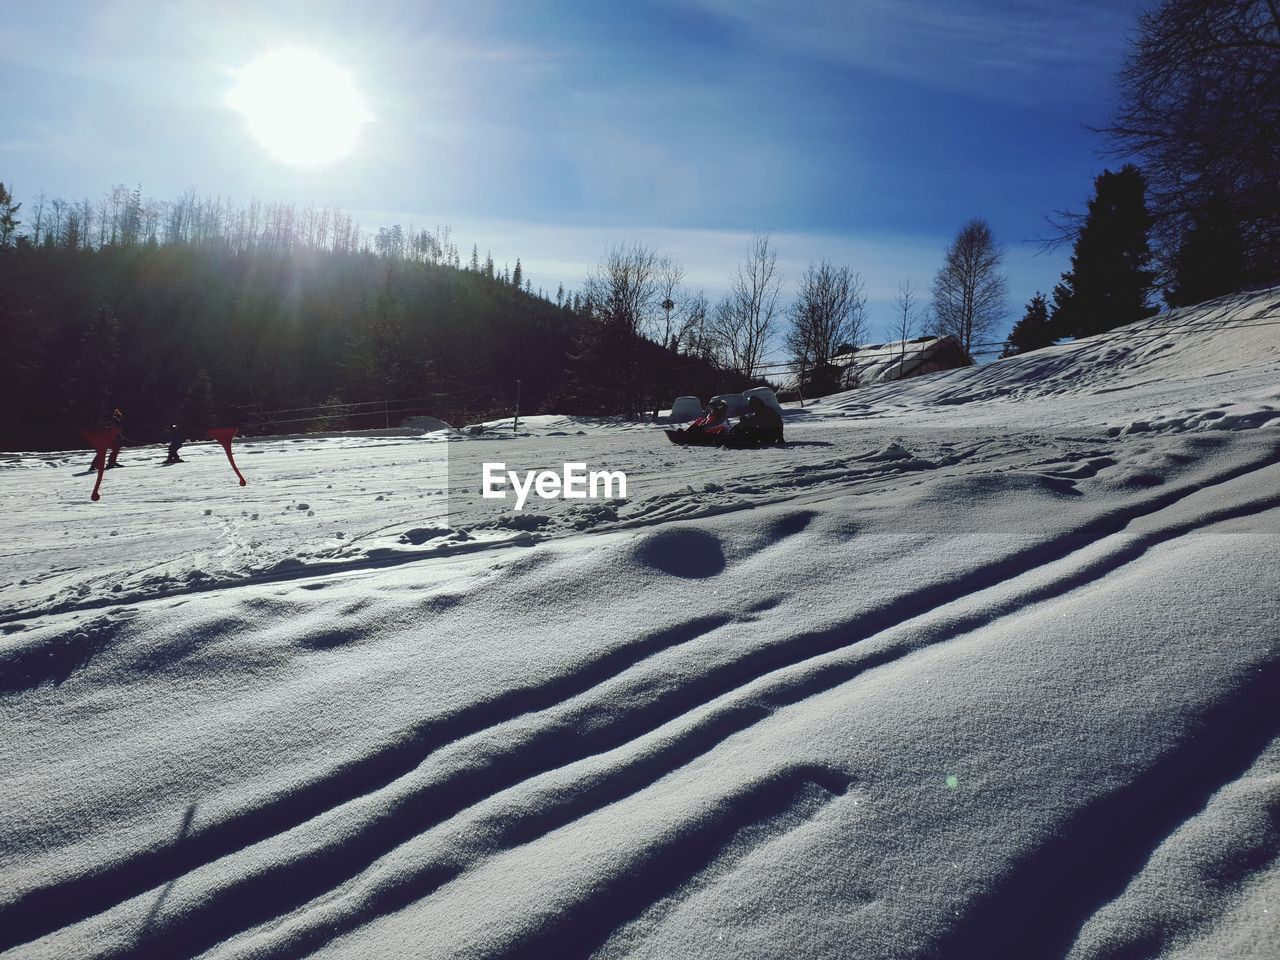 snow, winter, cold temperature, tree, sky, covering, nature, sunlight, plant, day, beauty in nature, land, mountain, sun, scenics - nature, field, tranquility, frozen, environment, outdoors, no people, lens flare, snowcapped mountain, powder snow